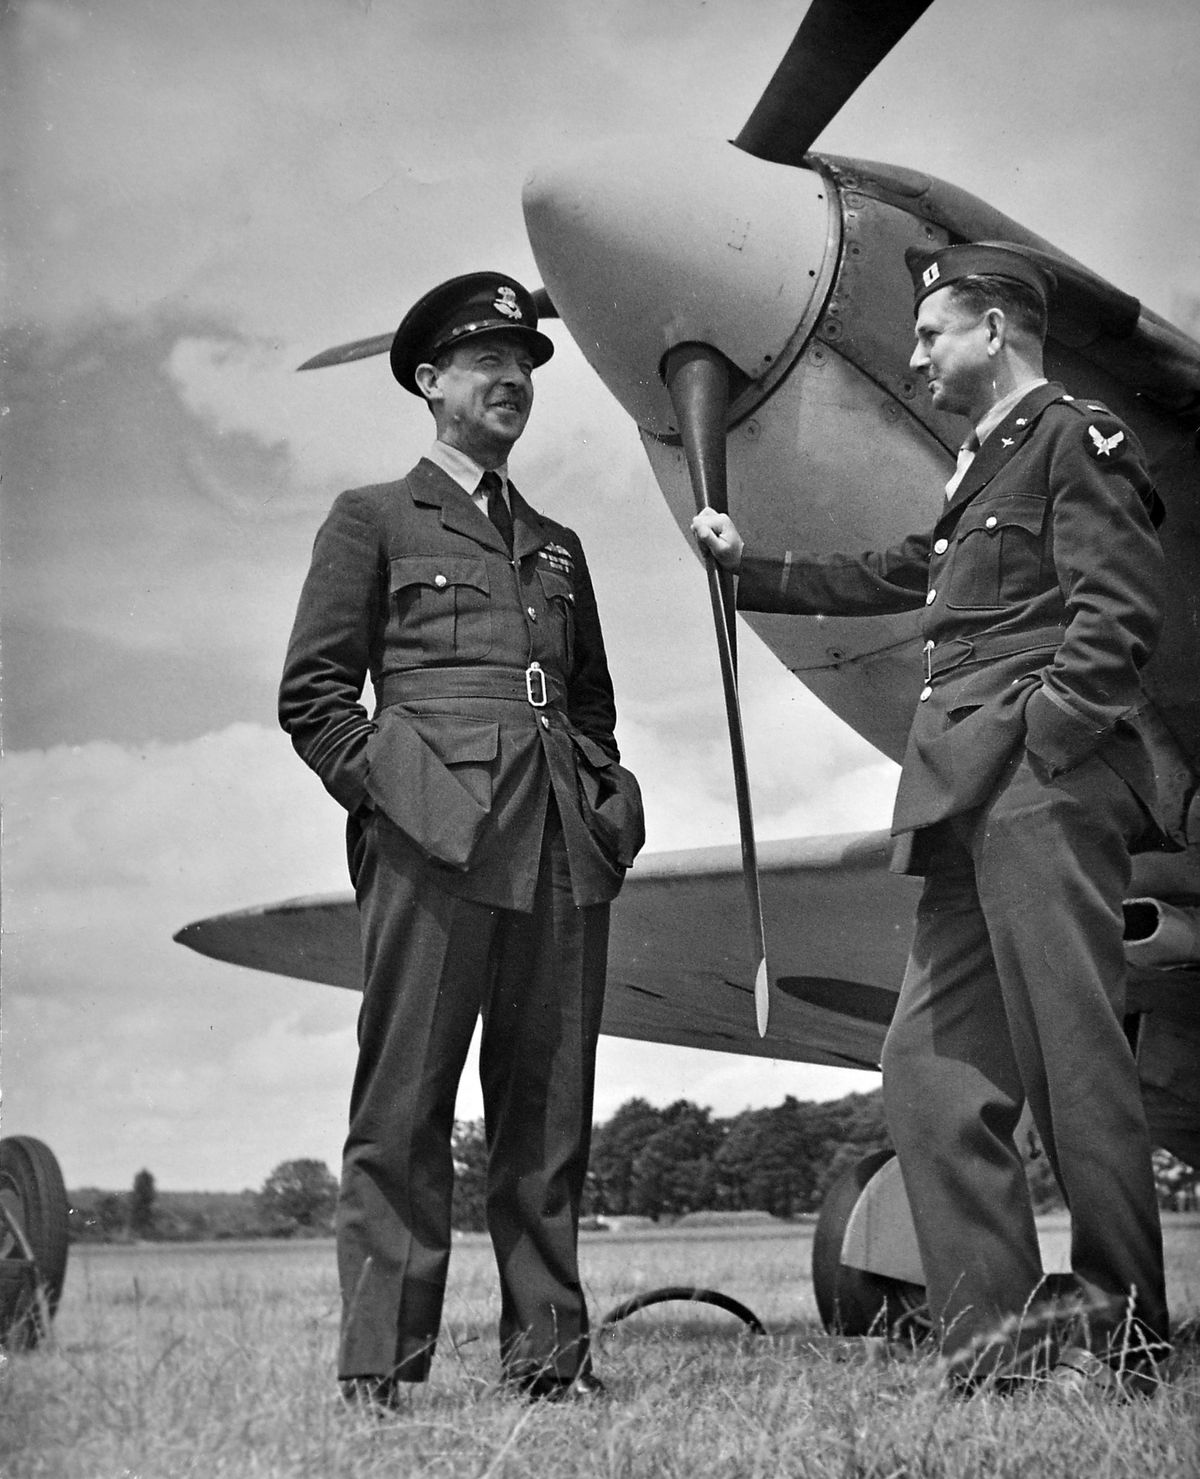 Sir Richard Leighton, who acted as the RAF's liaison officer with the Americans at Atcham airfield, with an American counterpart. A Spitfire forms the backdrop. Picture courtesy of Sir Michael Leighton.